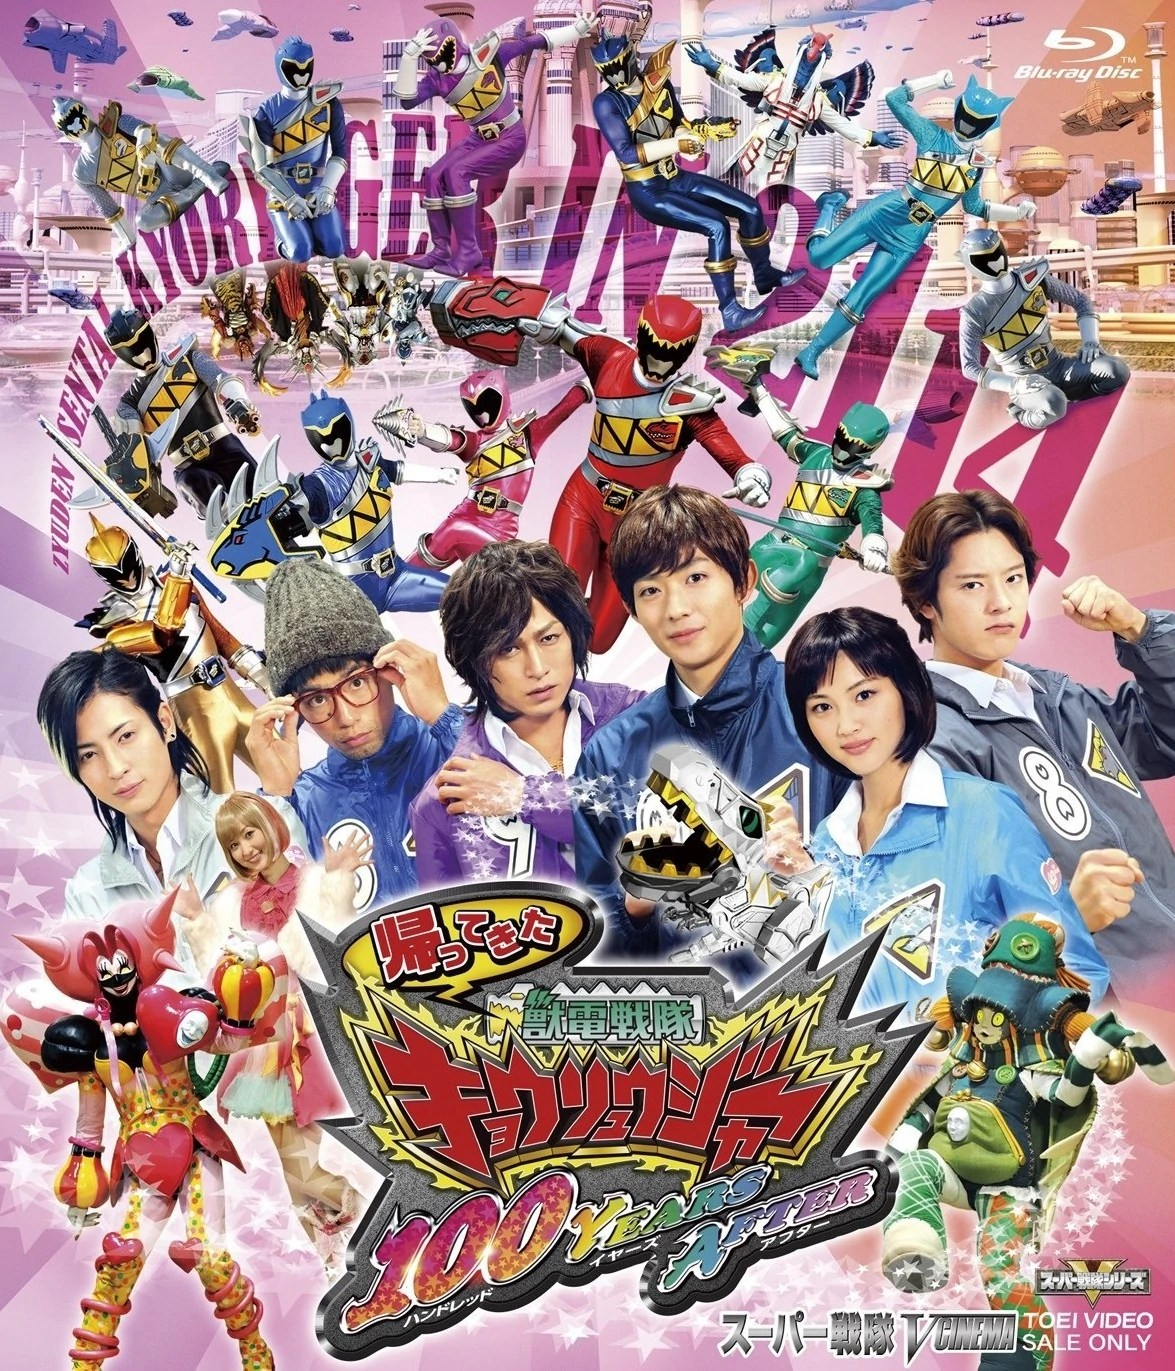 Zyuden Sentai Kyoryuger Returns: 100 YEARS AFTER RangerWiki